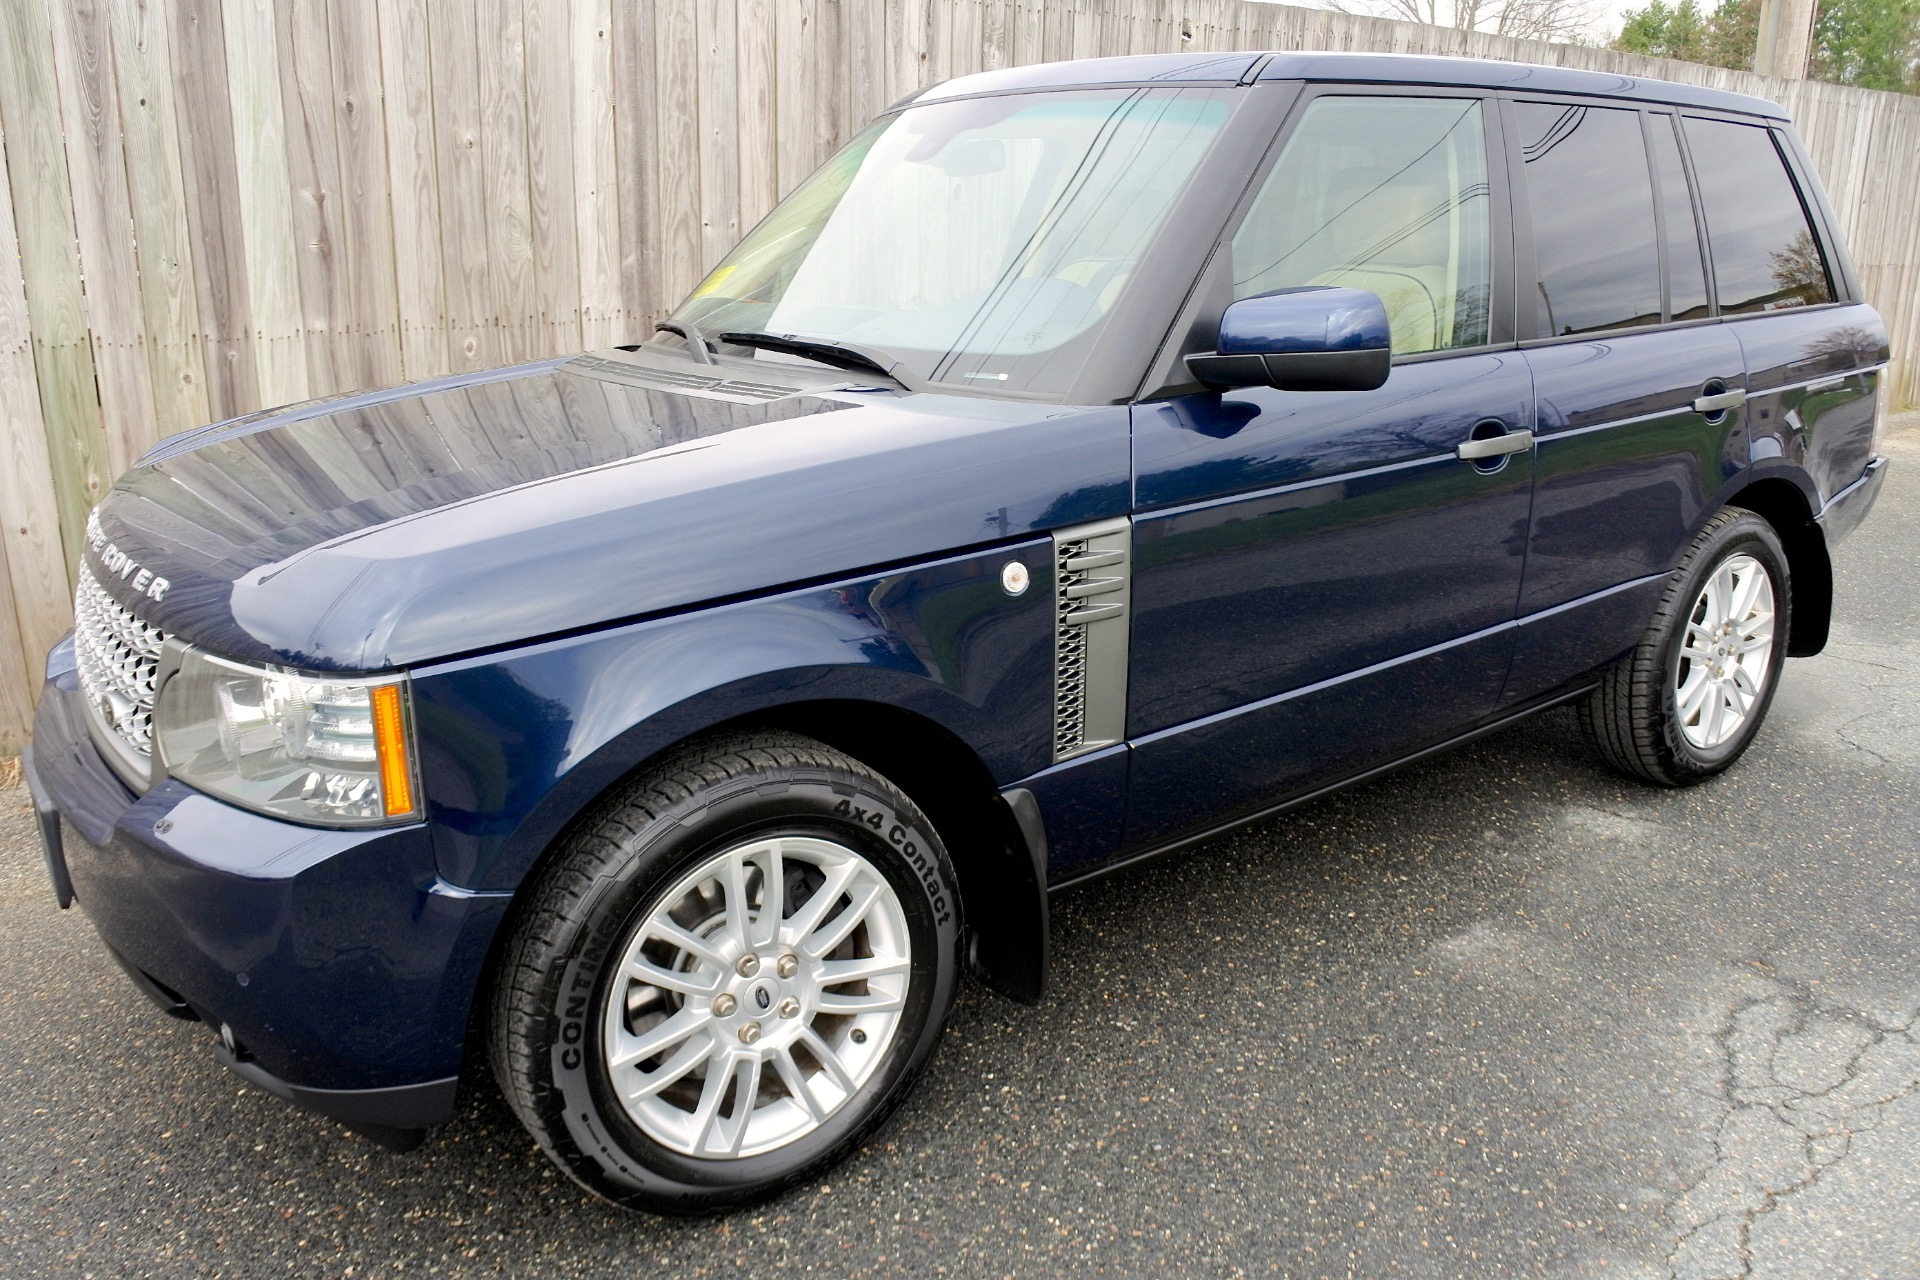 Used 2011 Land Rover Range Rover HSE Used 2011 Land Rover Range Rover HSE for sale  at Metro West Motorcars LLC in Shrewsbury MA 1